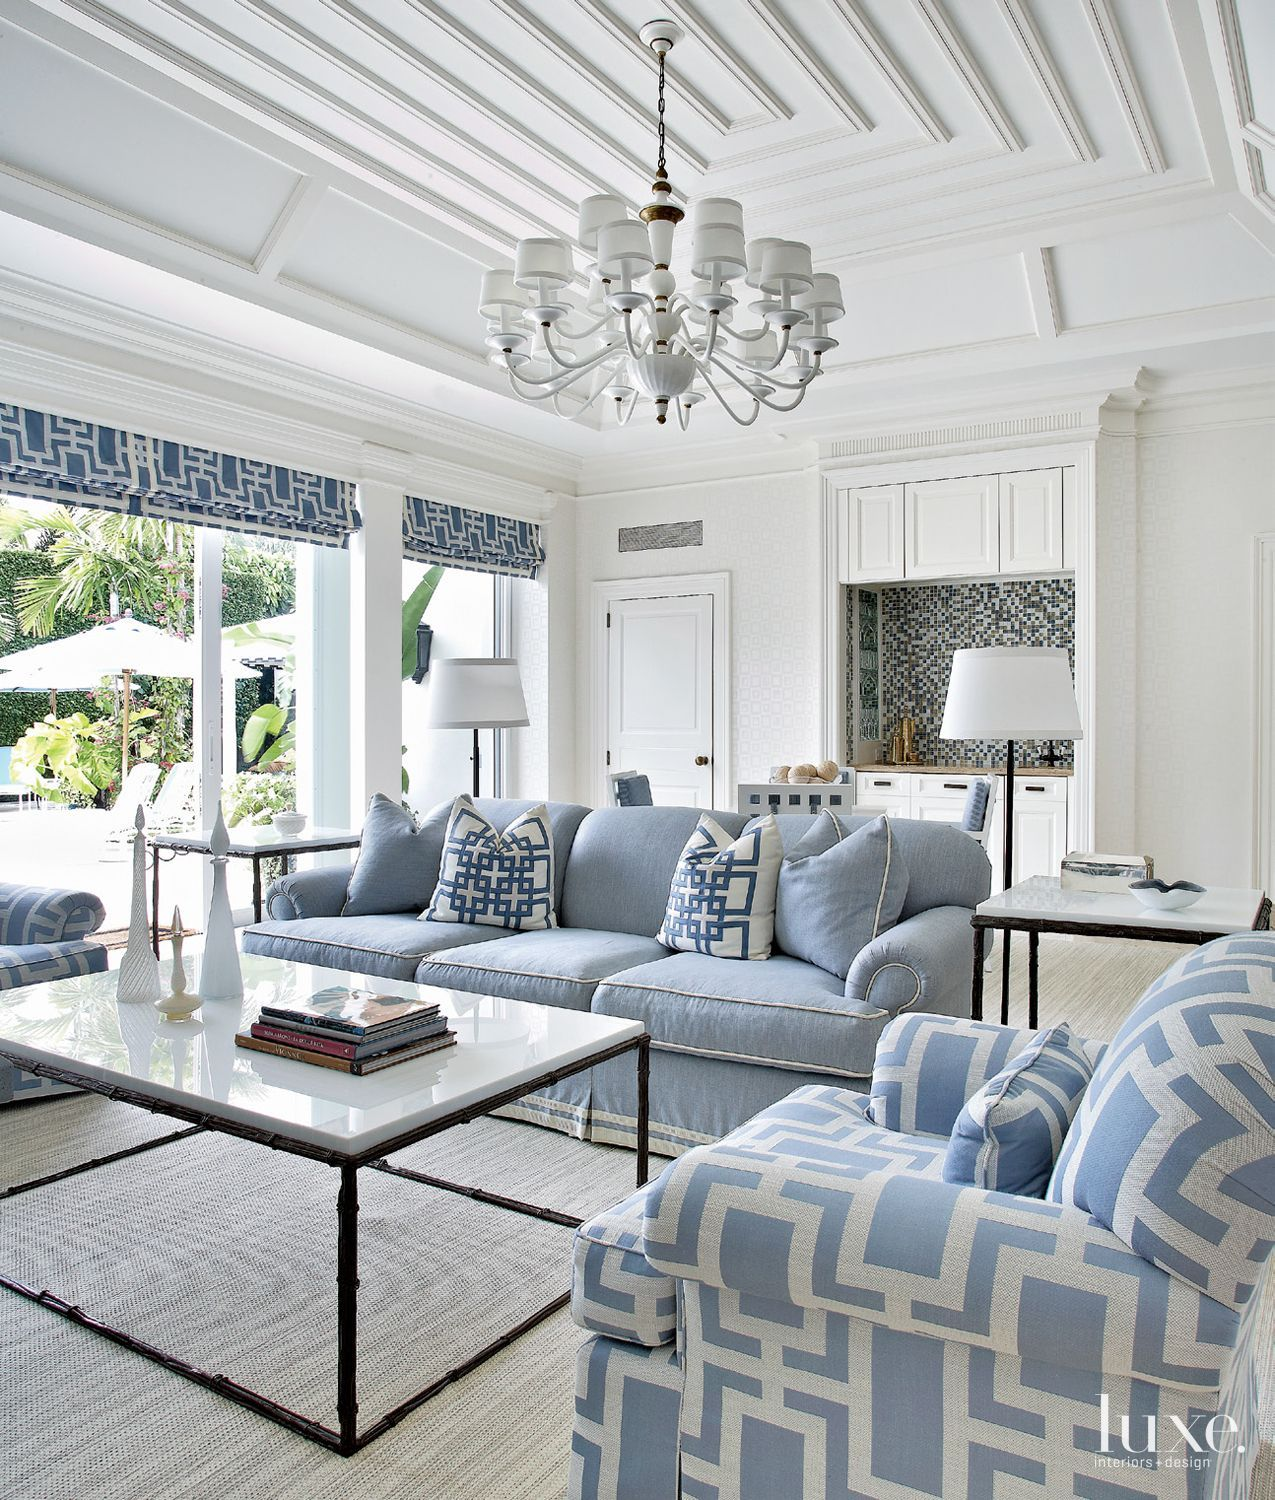 Grey White And Blue Living Room Blue And White Lounge Room Low Budget Interior Design